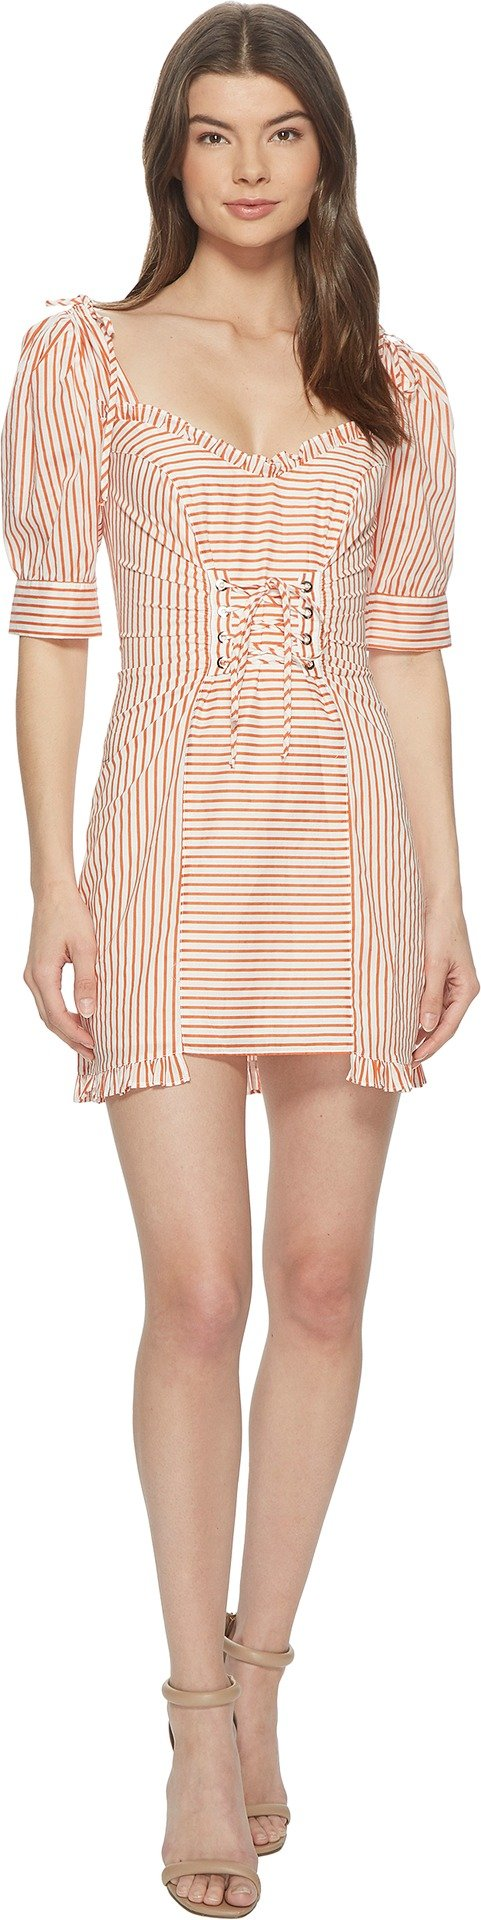 For Love and Lemons Women's Selma Lace-Up Mini Dress Copper Stripe Medium